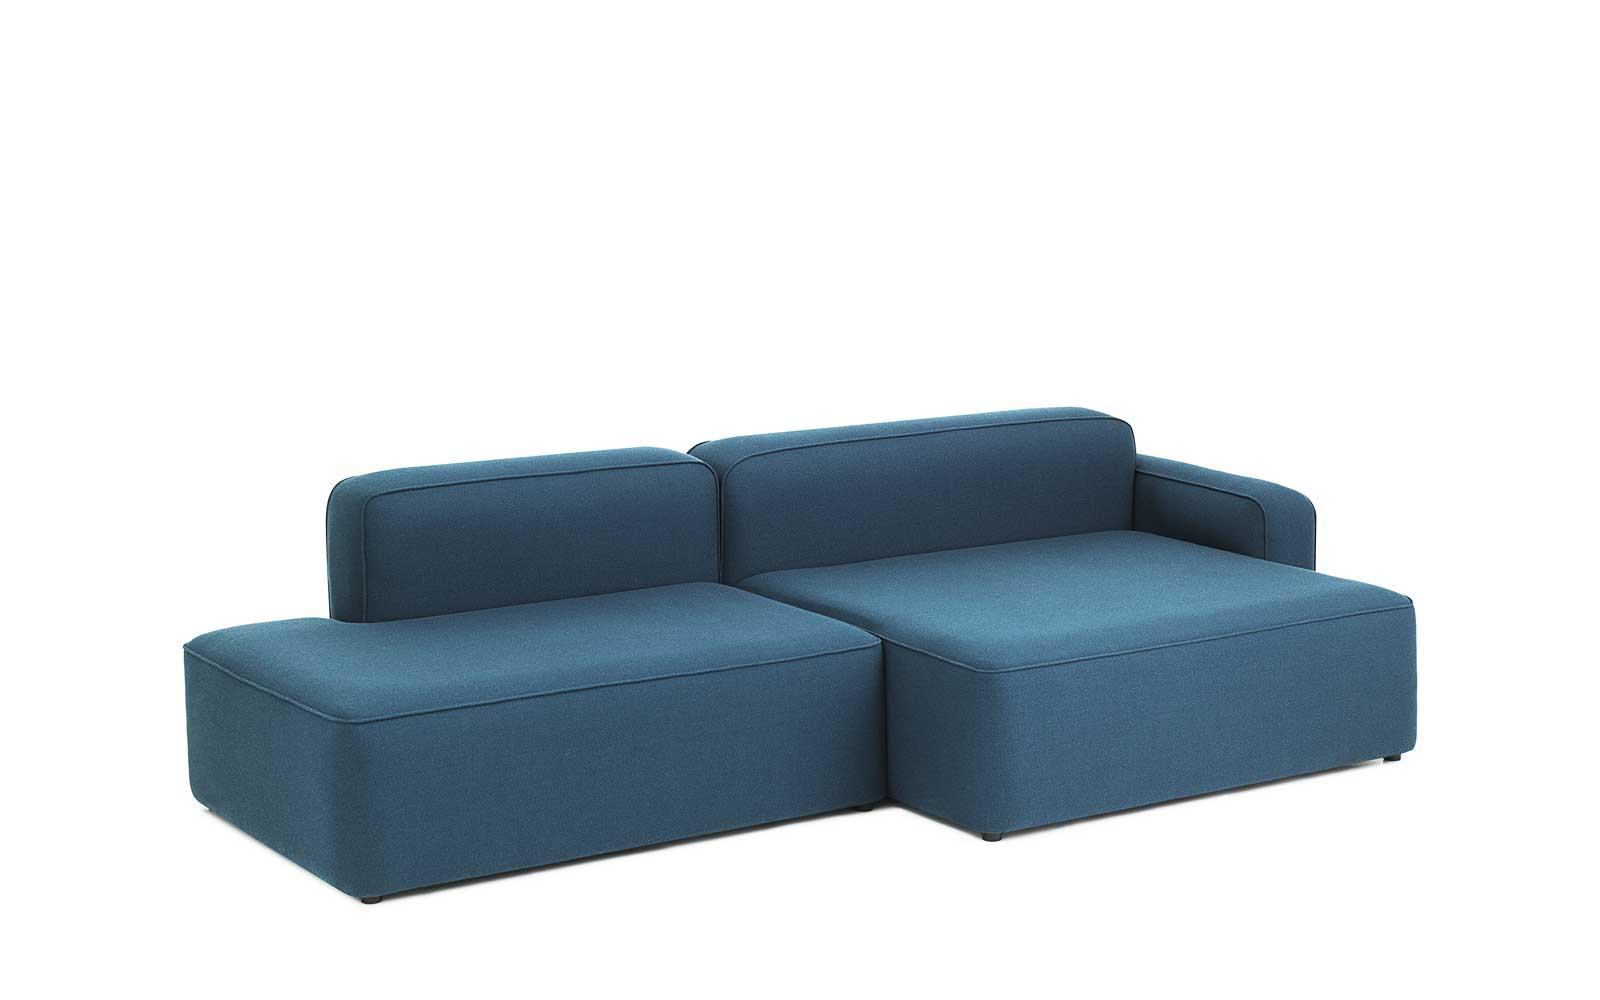 Rope Sofa Chaise Lounge Right2